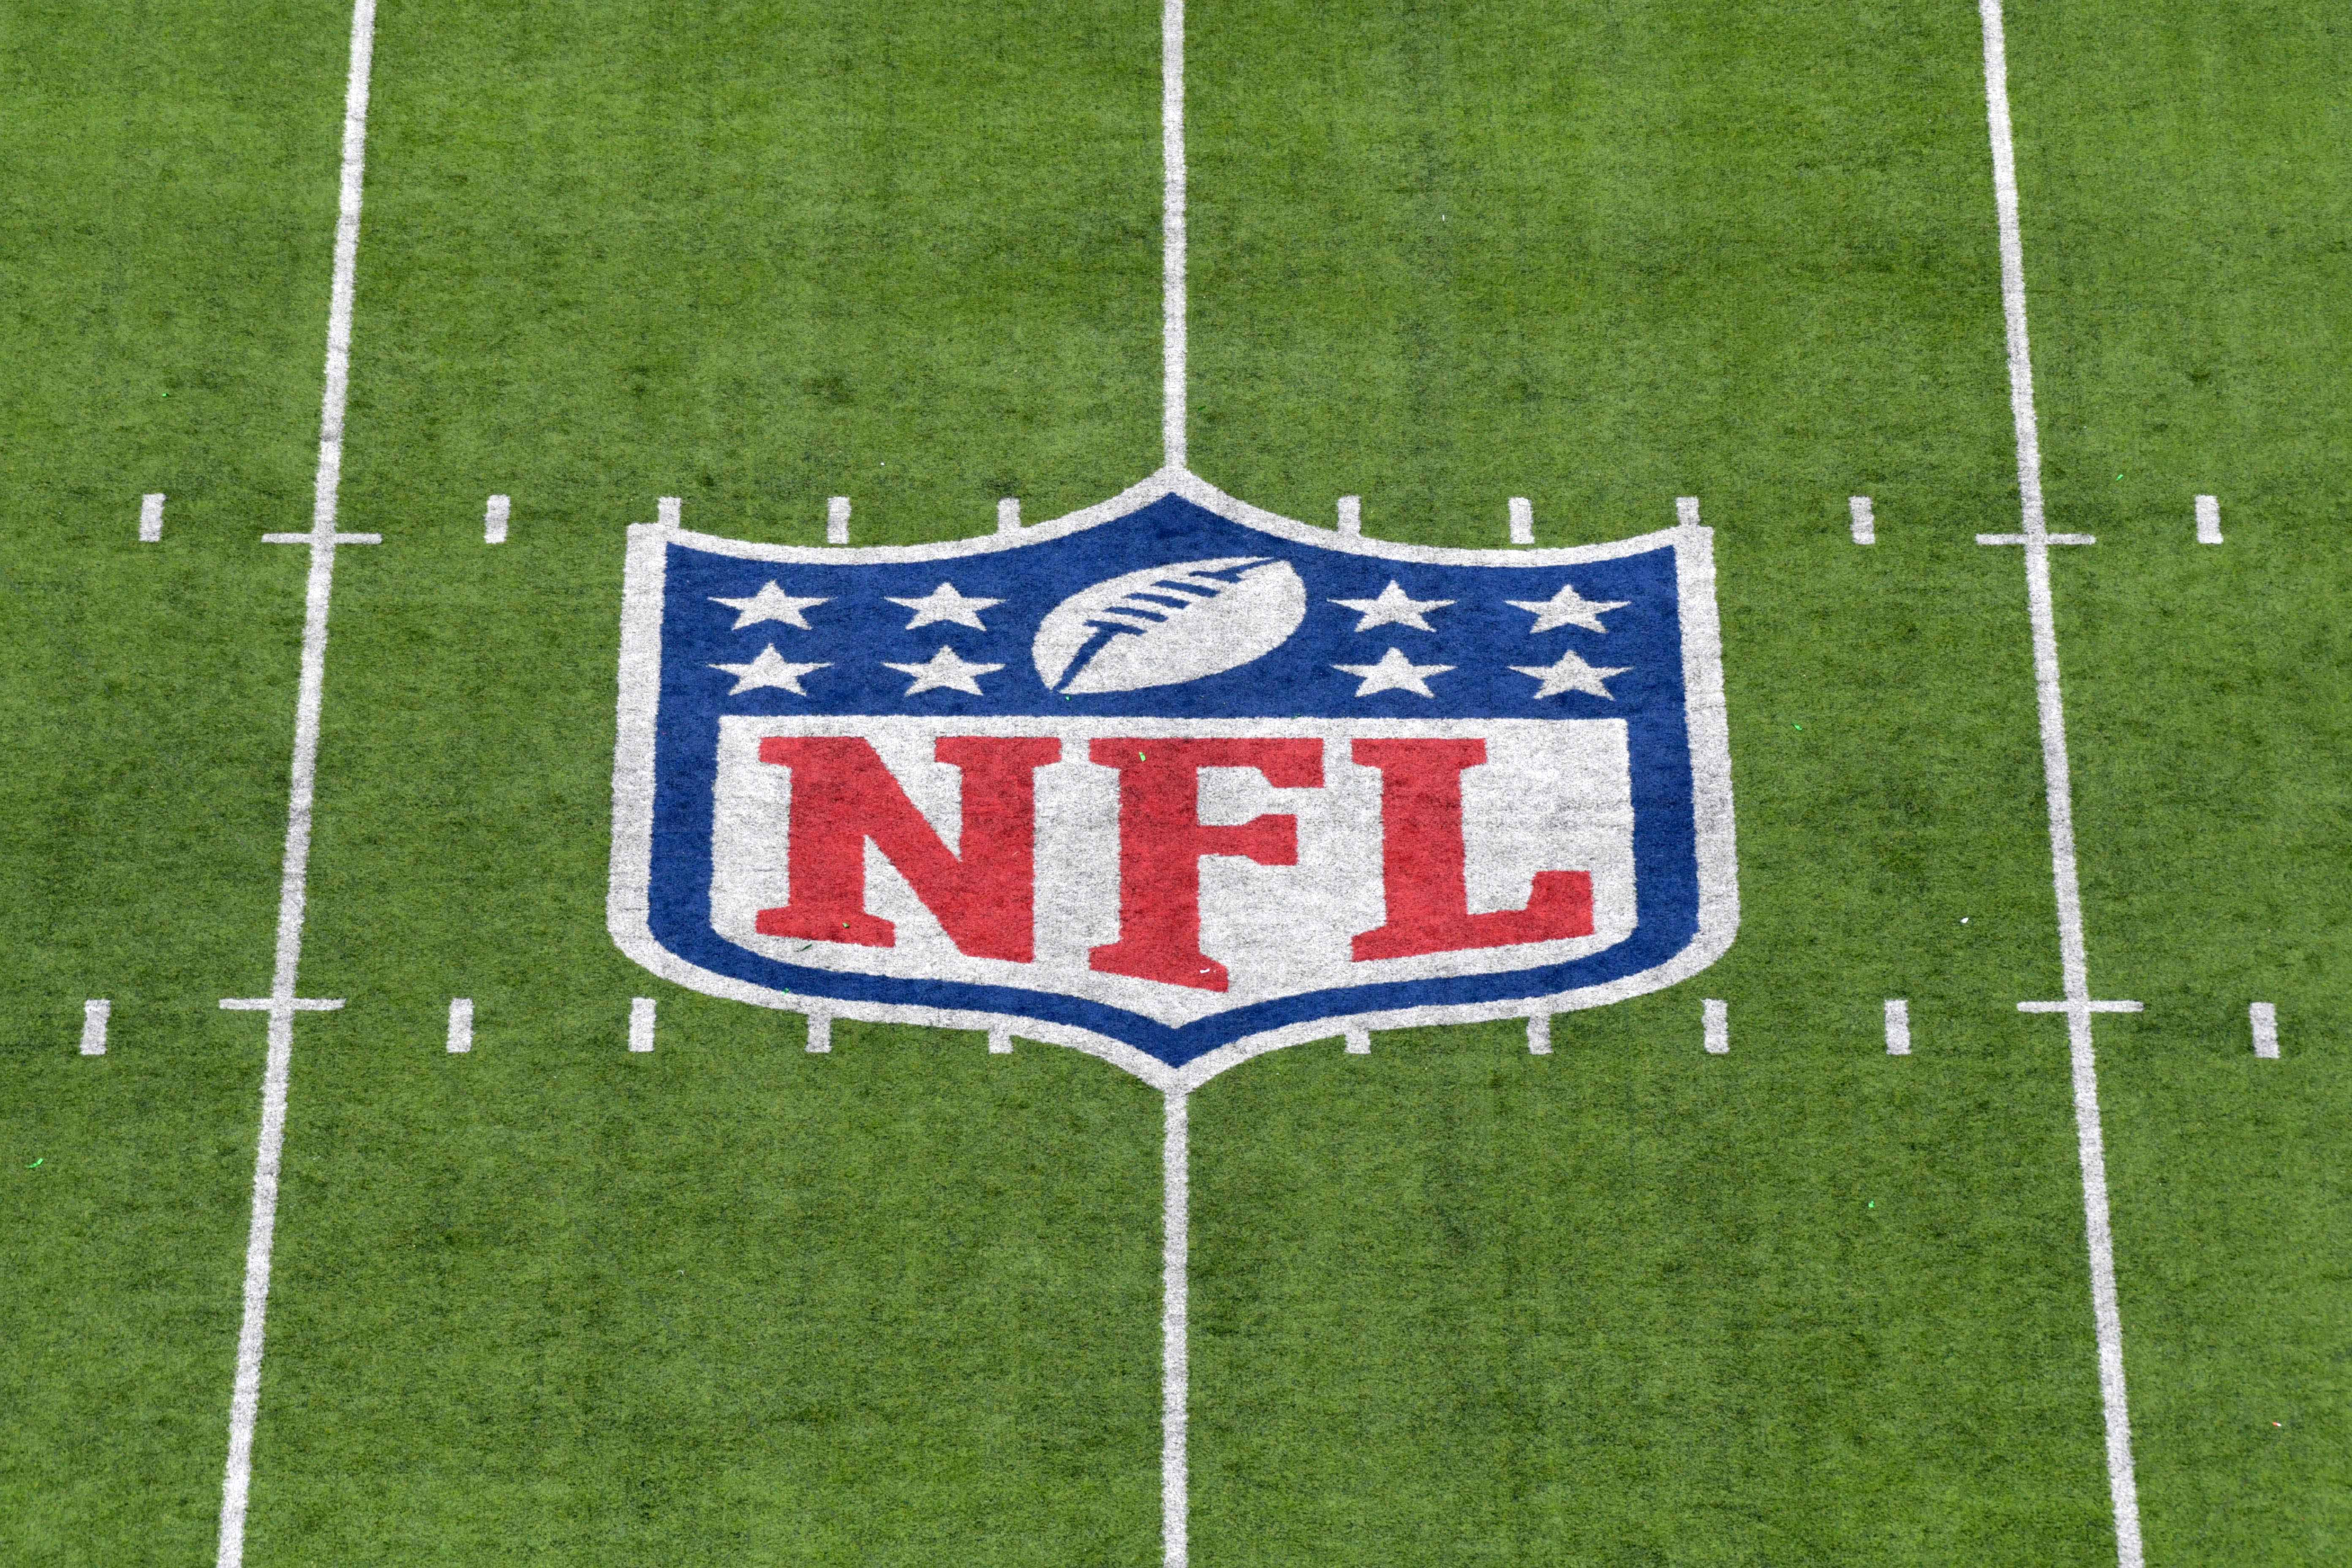 NFL playoffs schedule 2018: Times, dates, TV channels for every game